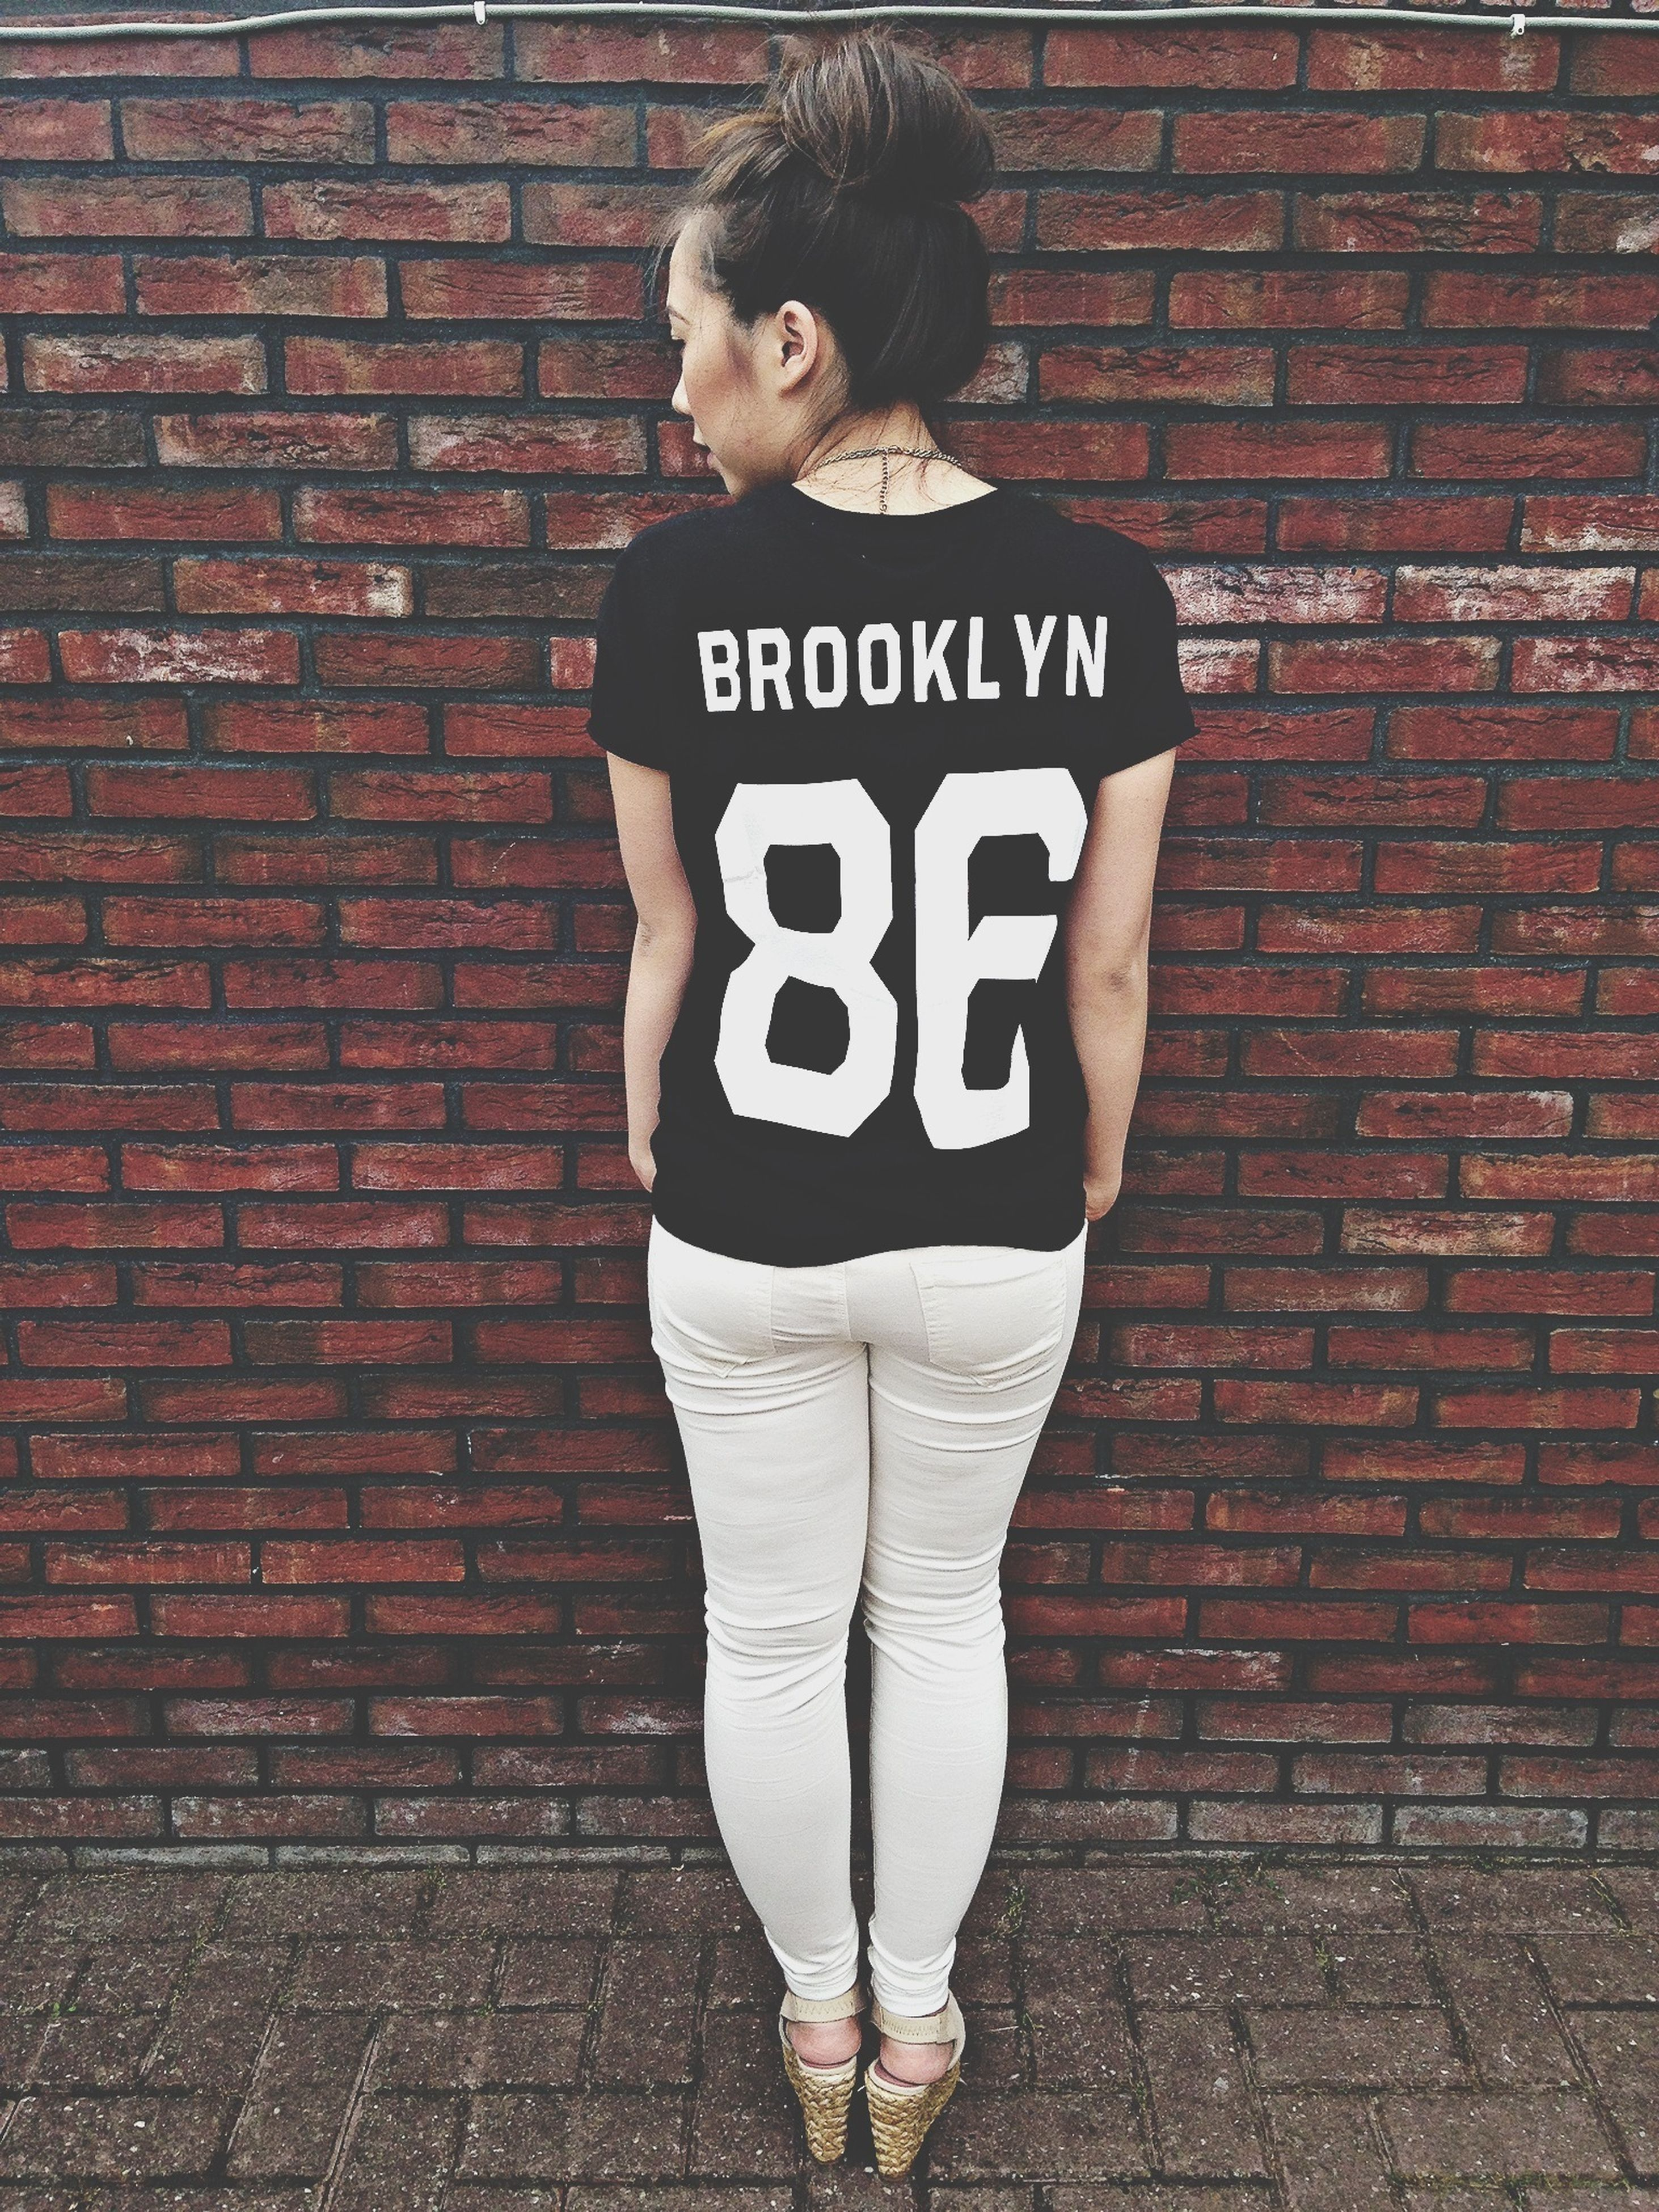 text, brick wall, western script, communication, wall - building feature, built structure, architecture, building exterior, front view, red, wall, standing, day, outdoors, person, lifestyles, casual clothing, sign